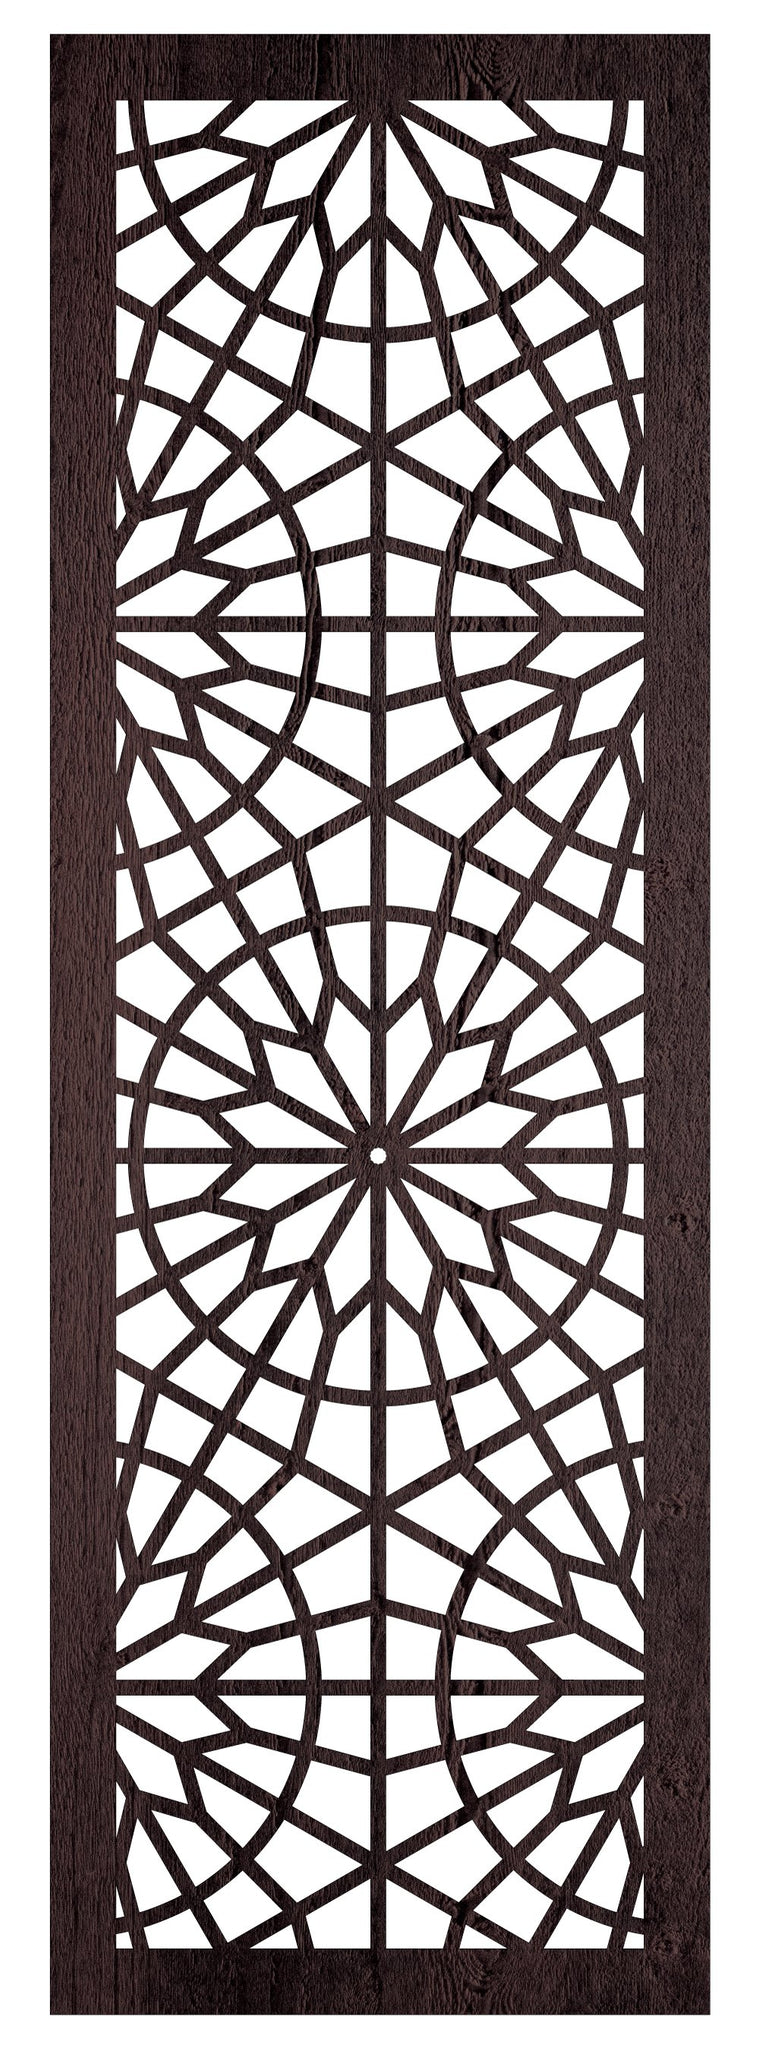 Rome - 1800 x 600 mm - 9 mm Decorative Hardwood Screen - Living Effects